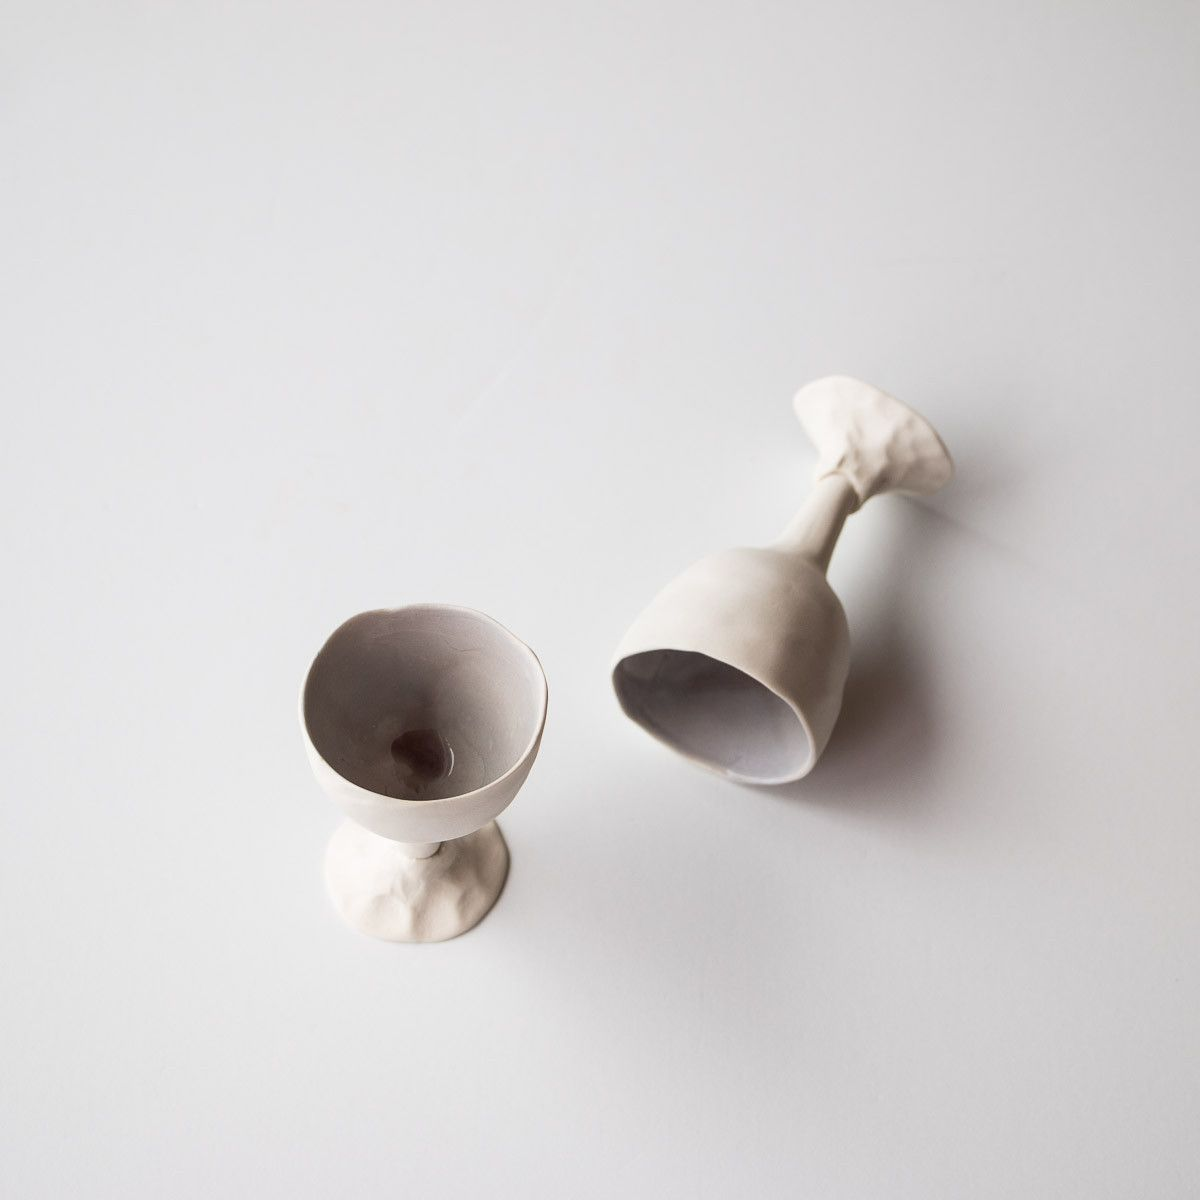 These delicate porcelain egg cups are handmade by ceramic artist egg cups are handmade by ceramic artist isabelle huot the very organic shape of these cups is directly inspired by nature perfect as gifts at easter negle Gallery